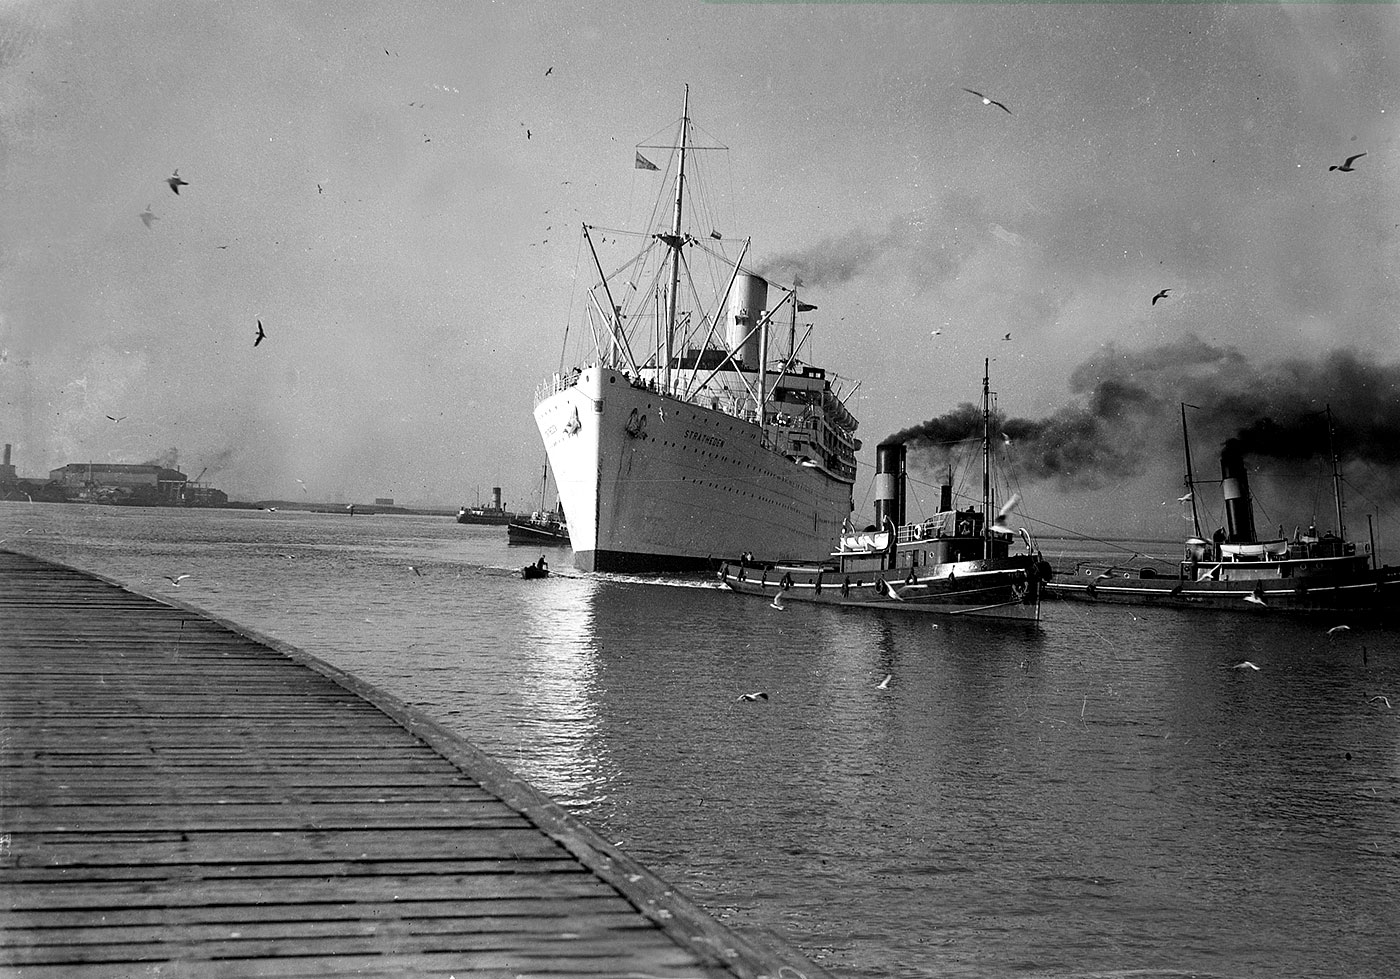 The <i>SS Stratheden</i> being manouvered into port helped by two tugs